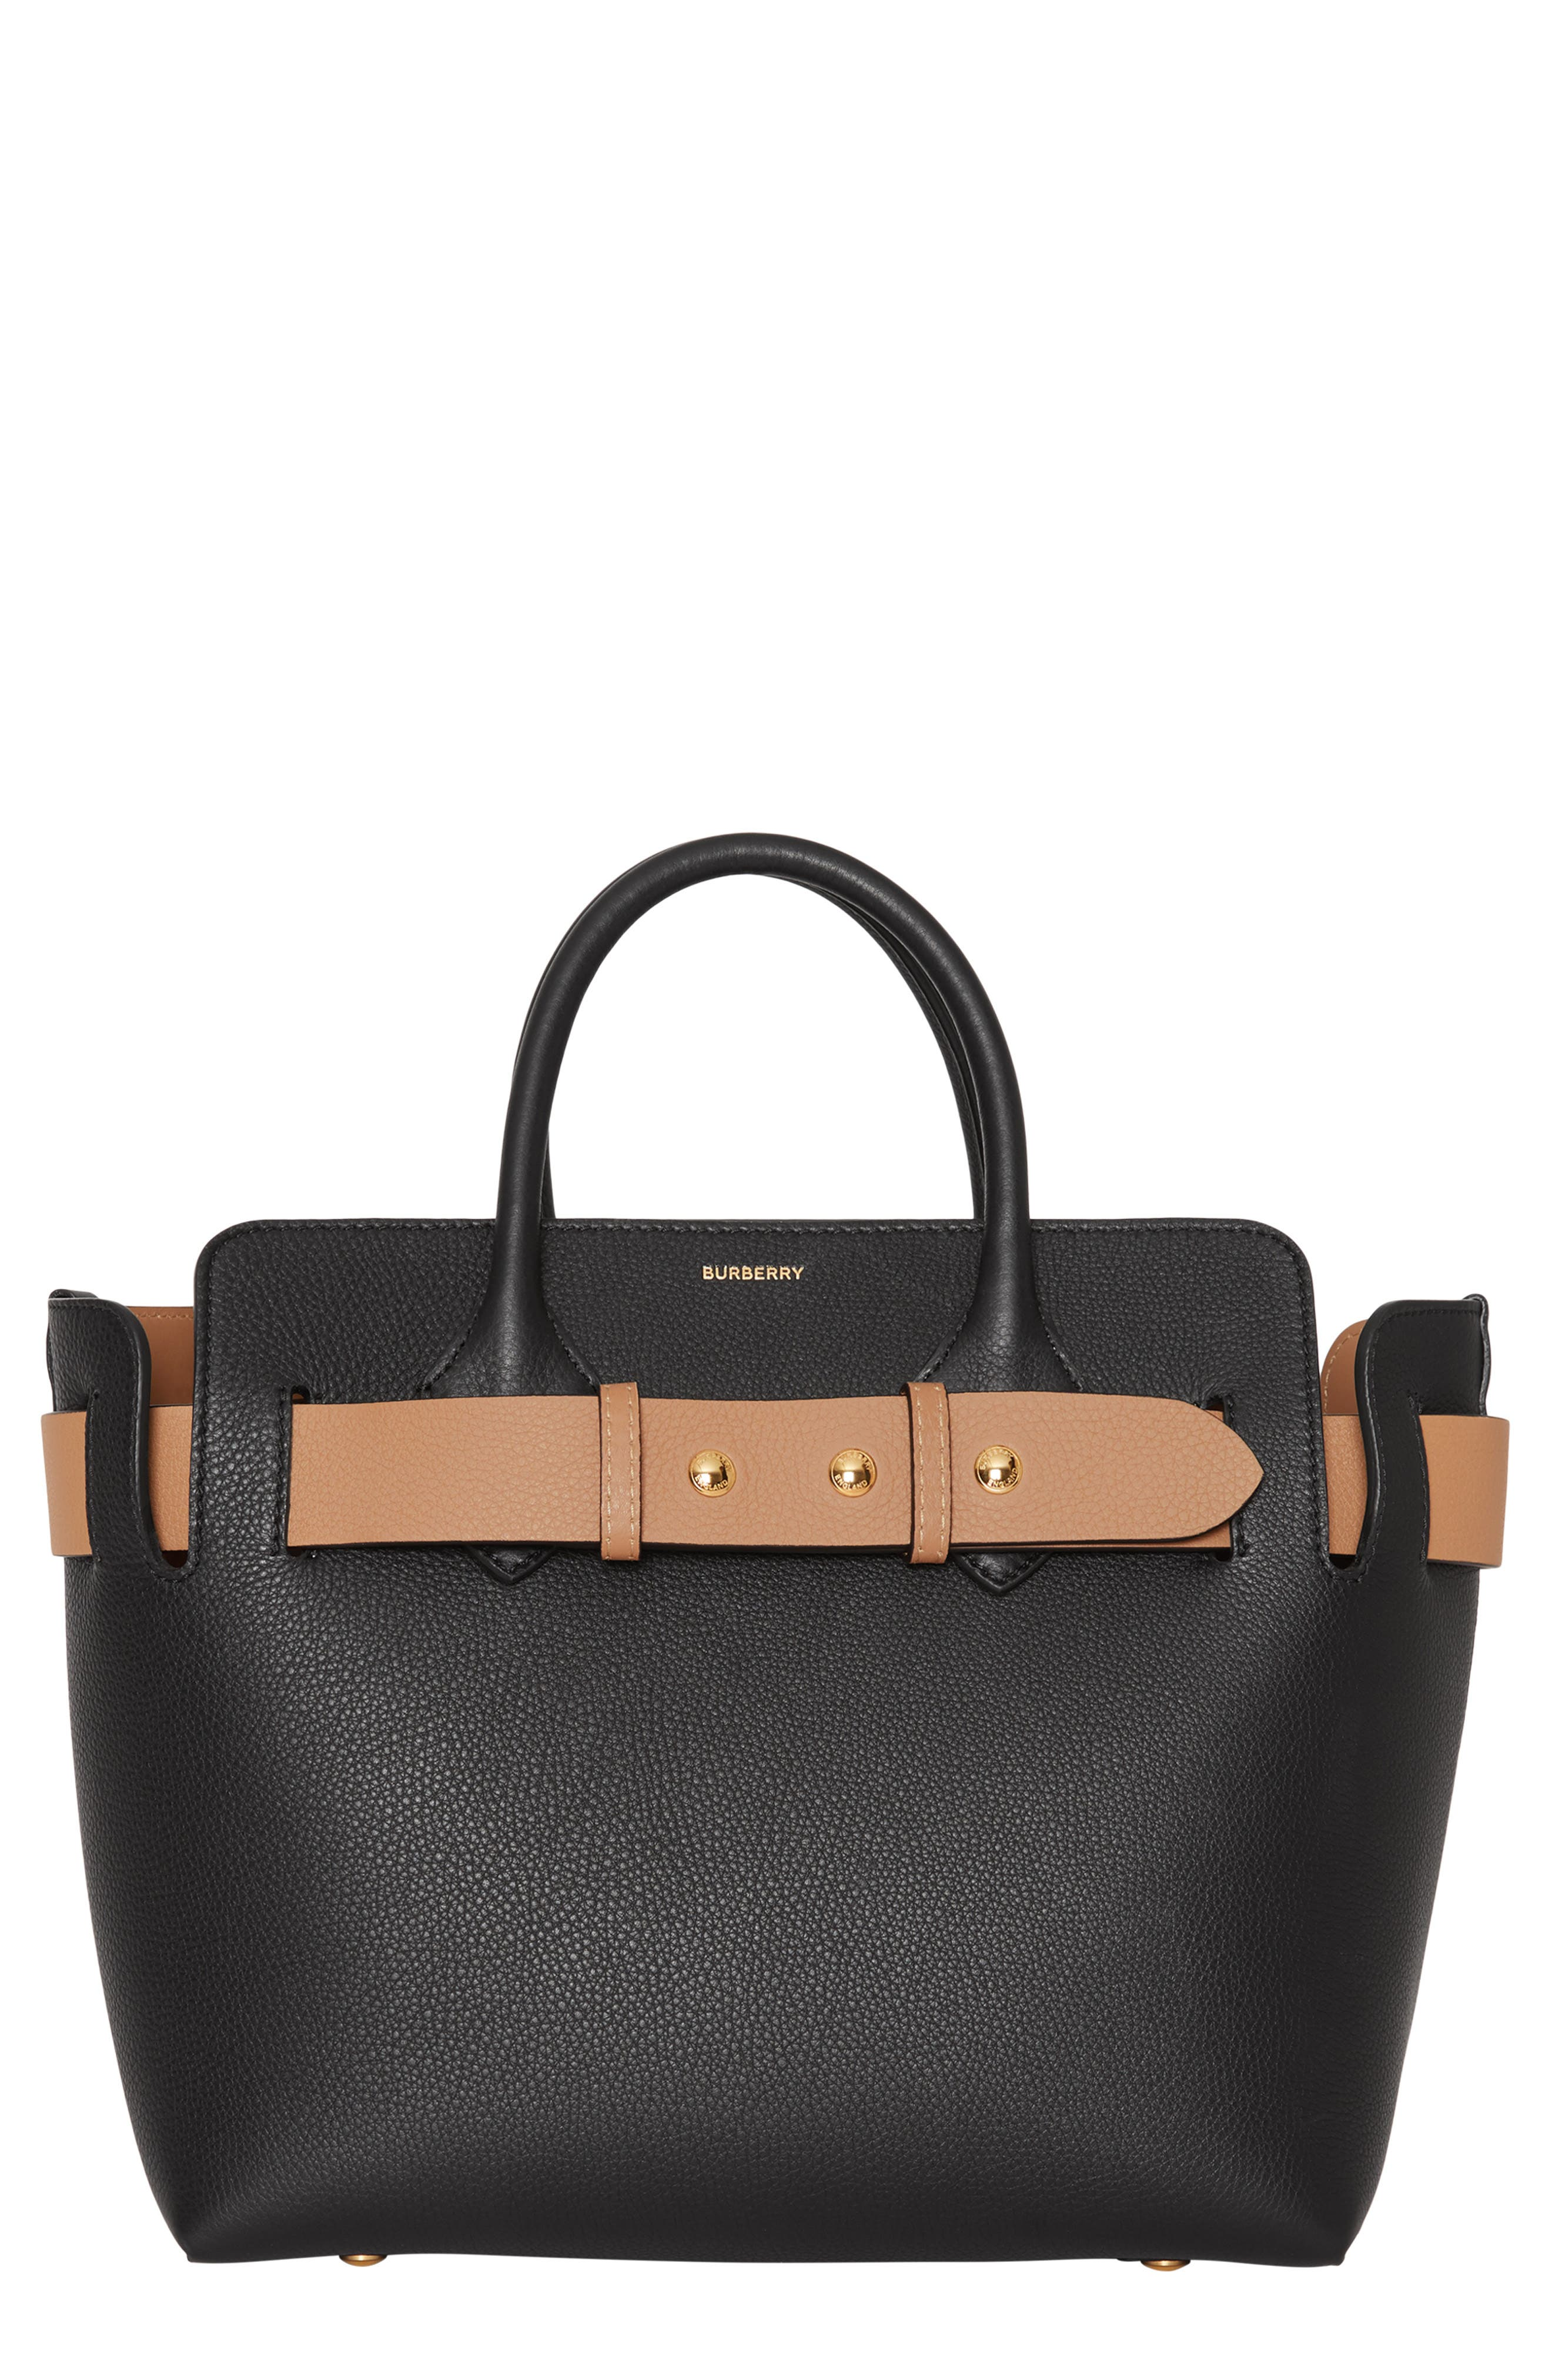 BURBERRY, Small Belt Leather Satchel, Main thumbnail 1, color, BLACK